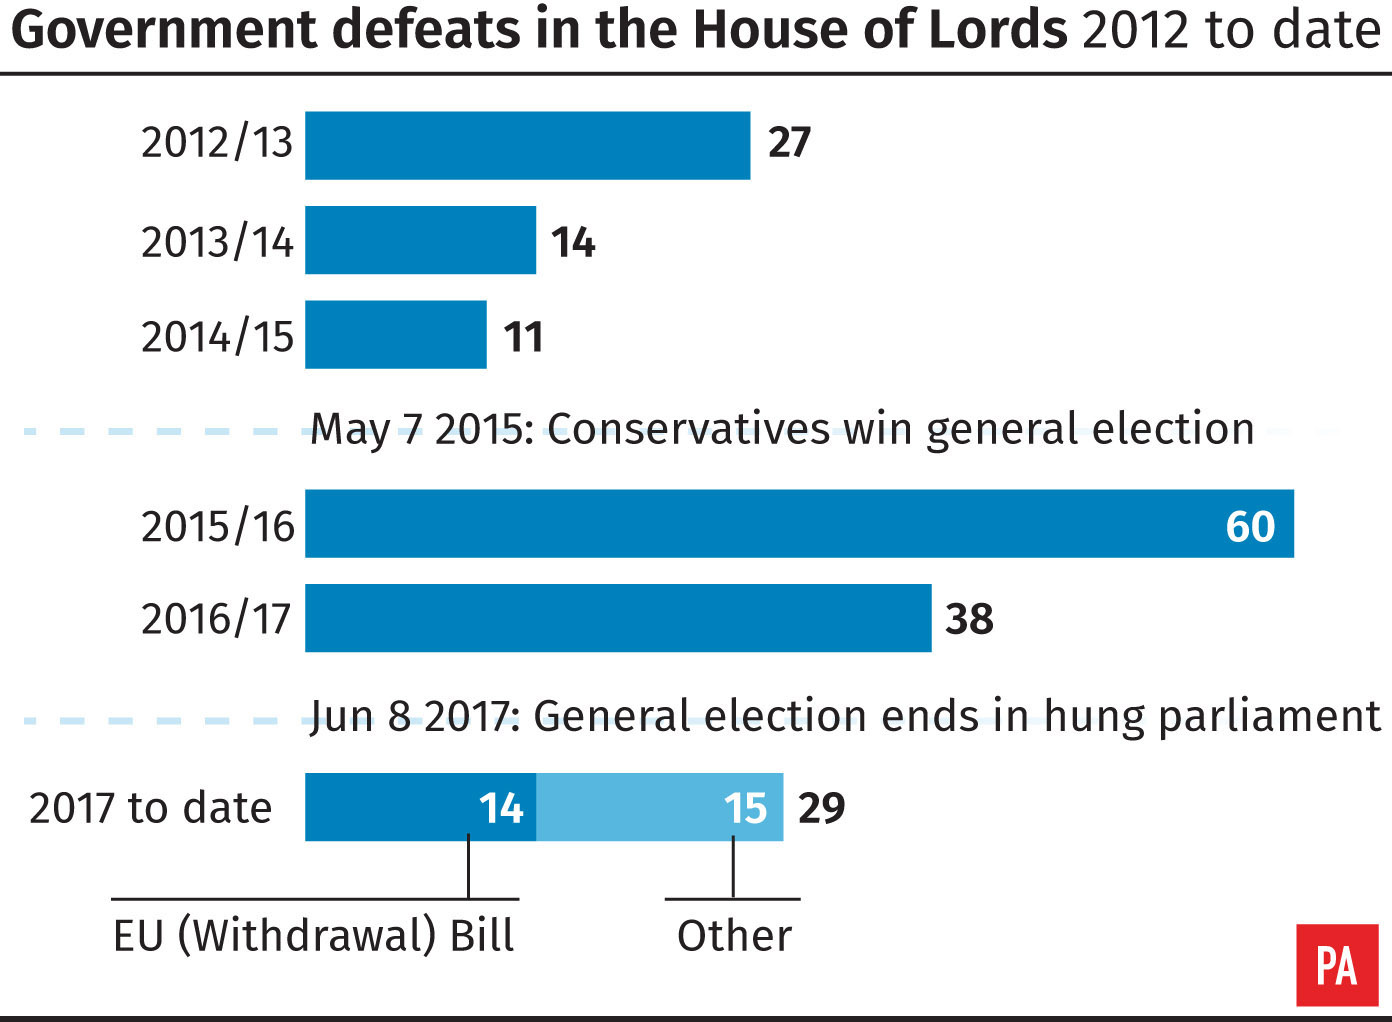 United Kingdom  government once again defeated in House of Lords on European Union  bill